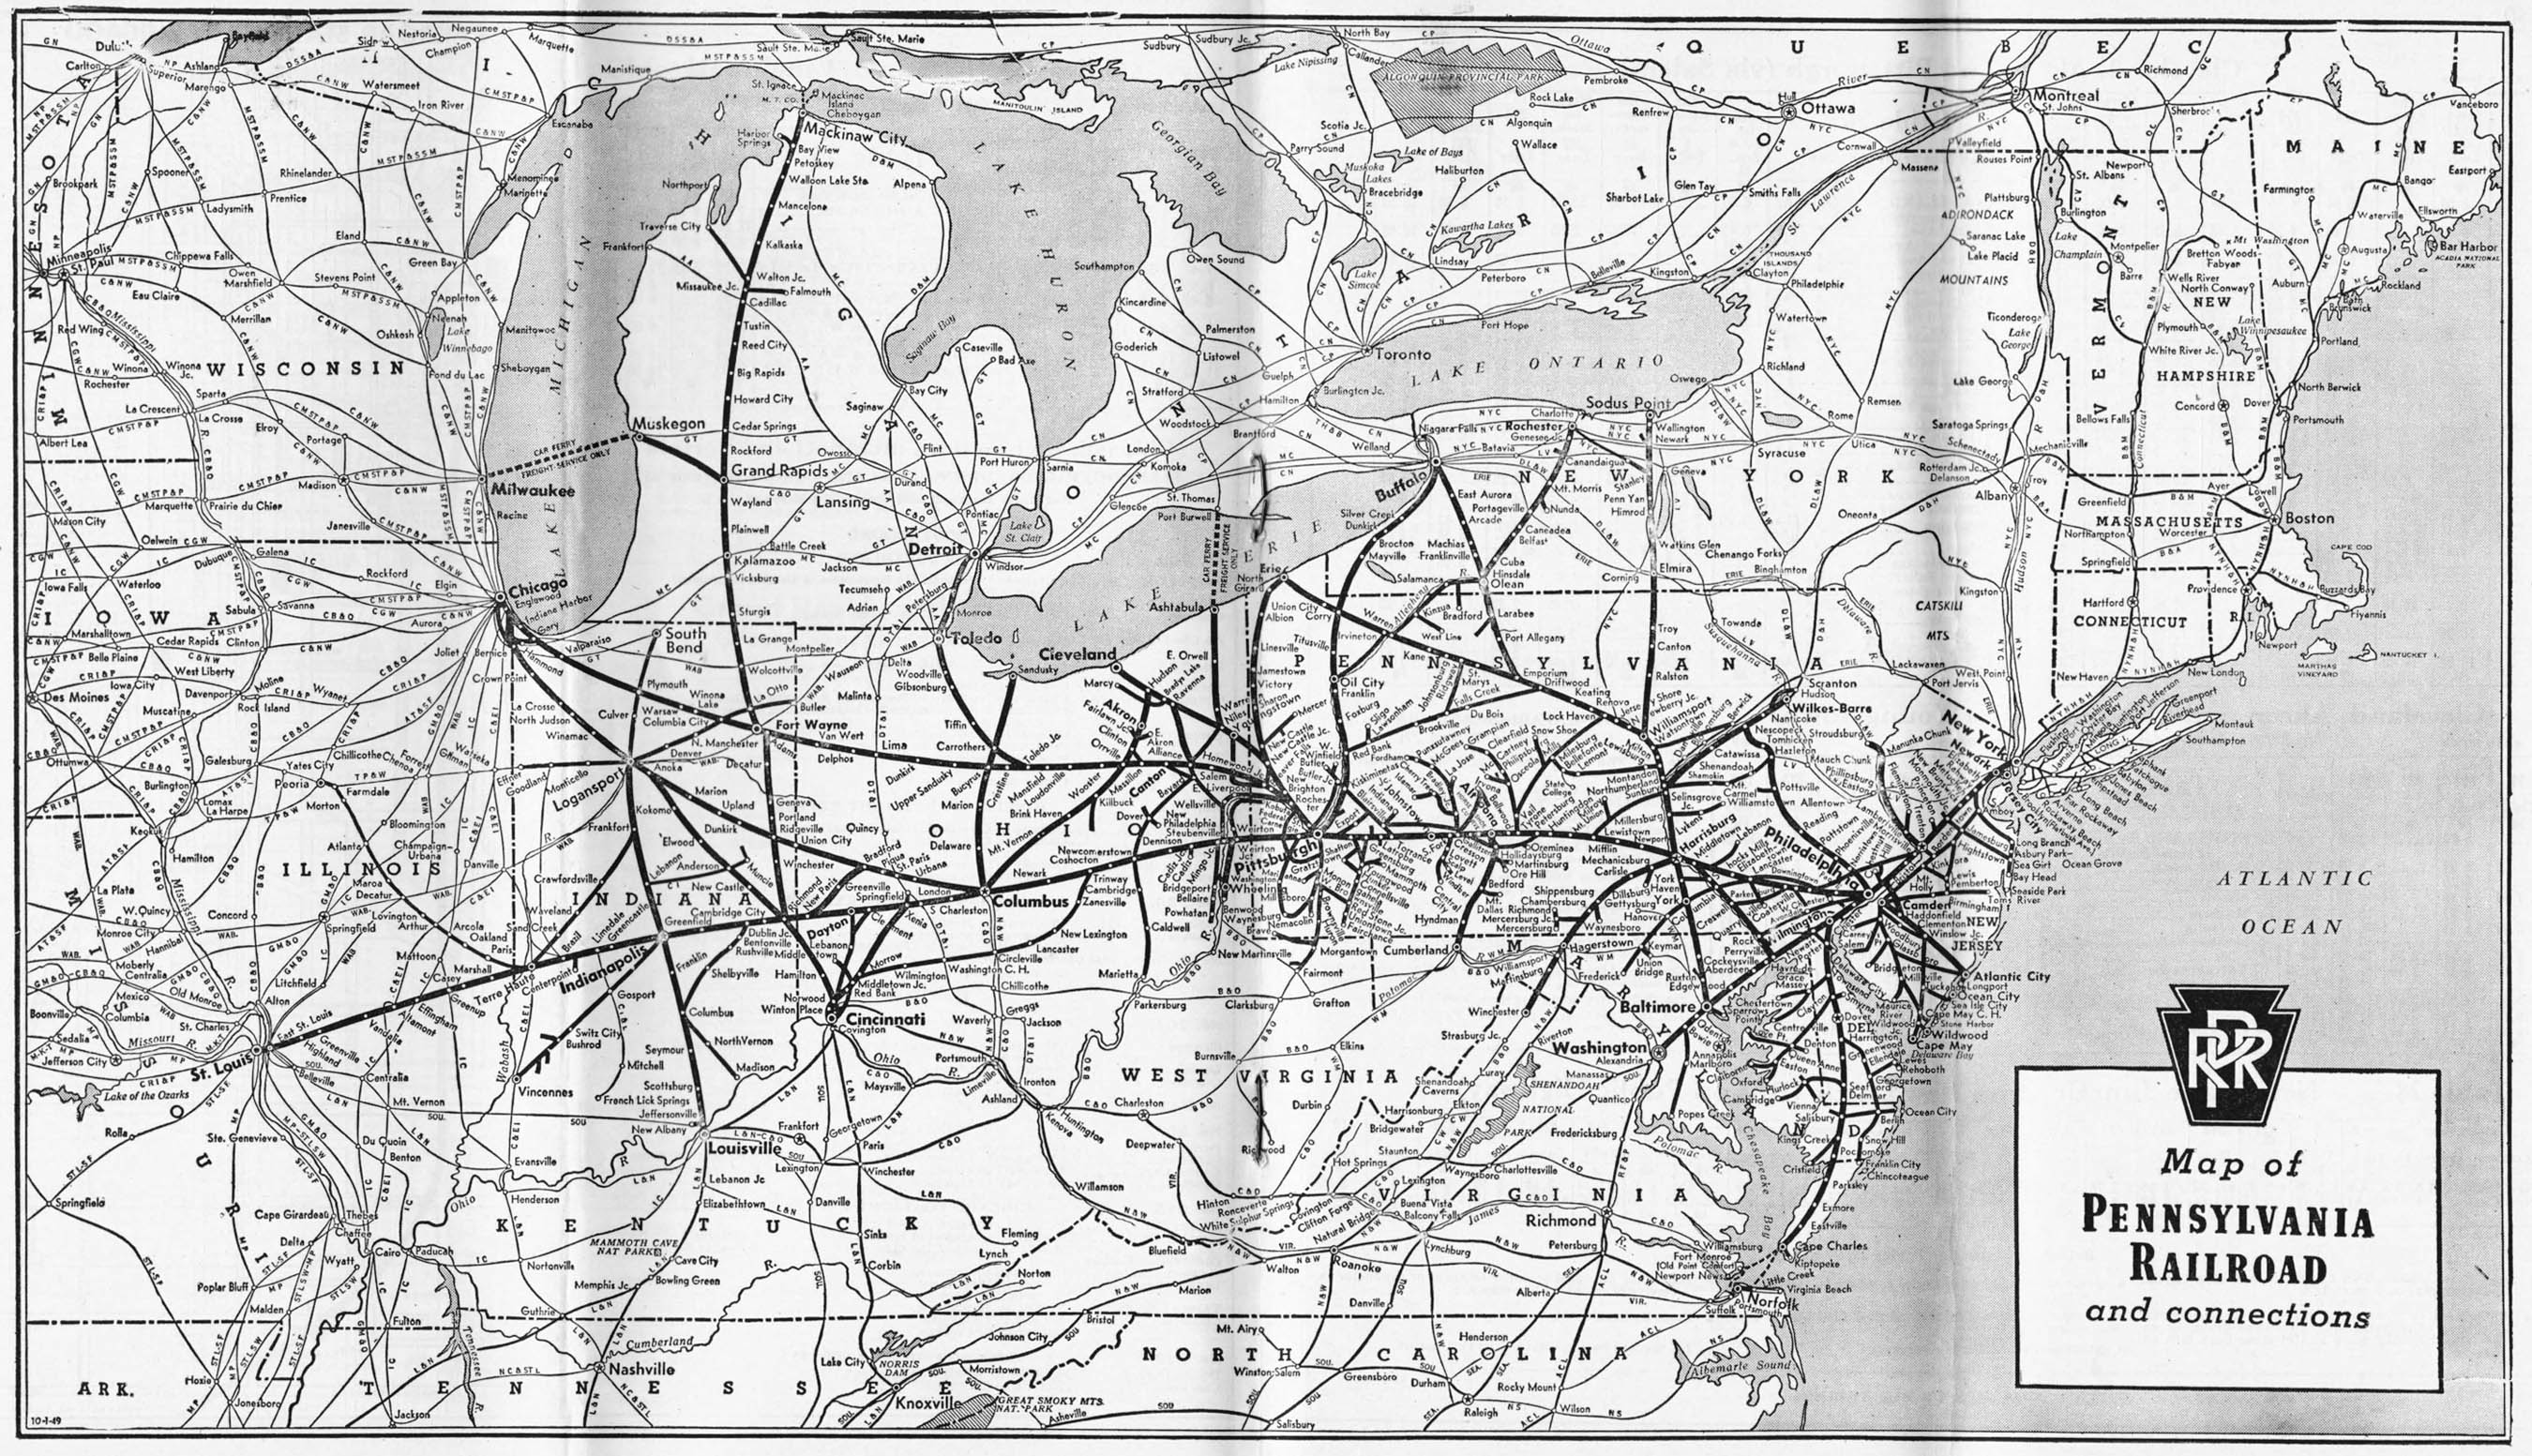 The Pennsylvania Railroad - Us railroad traffic map